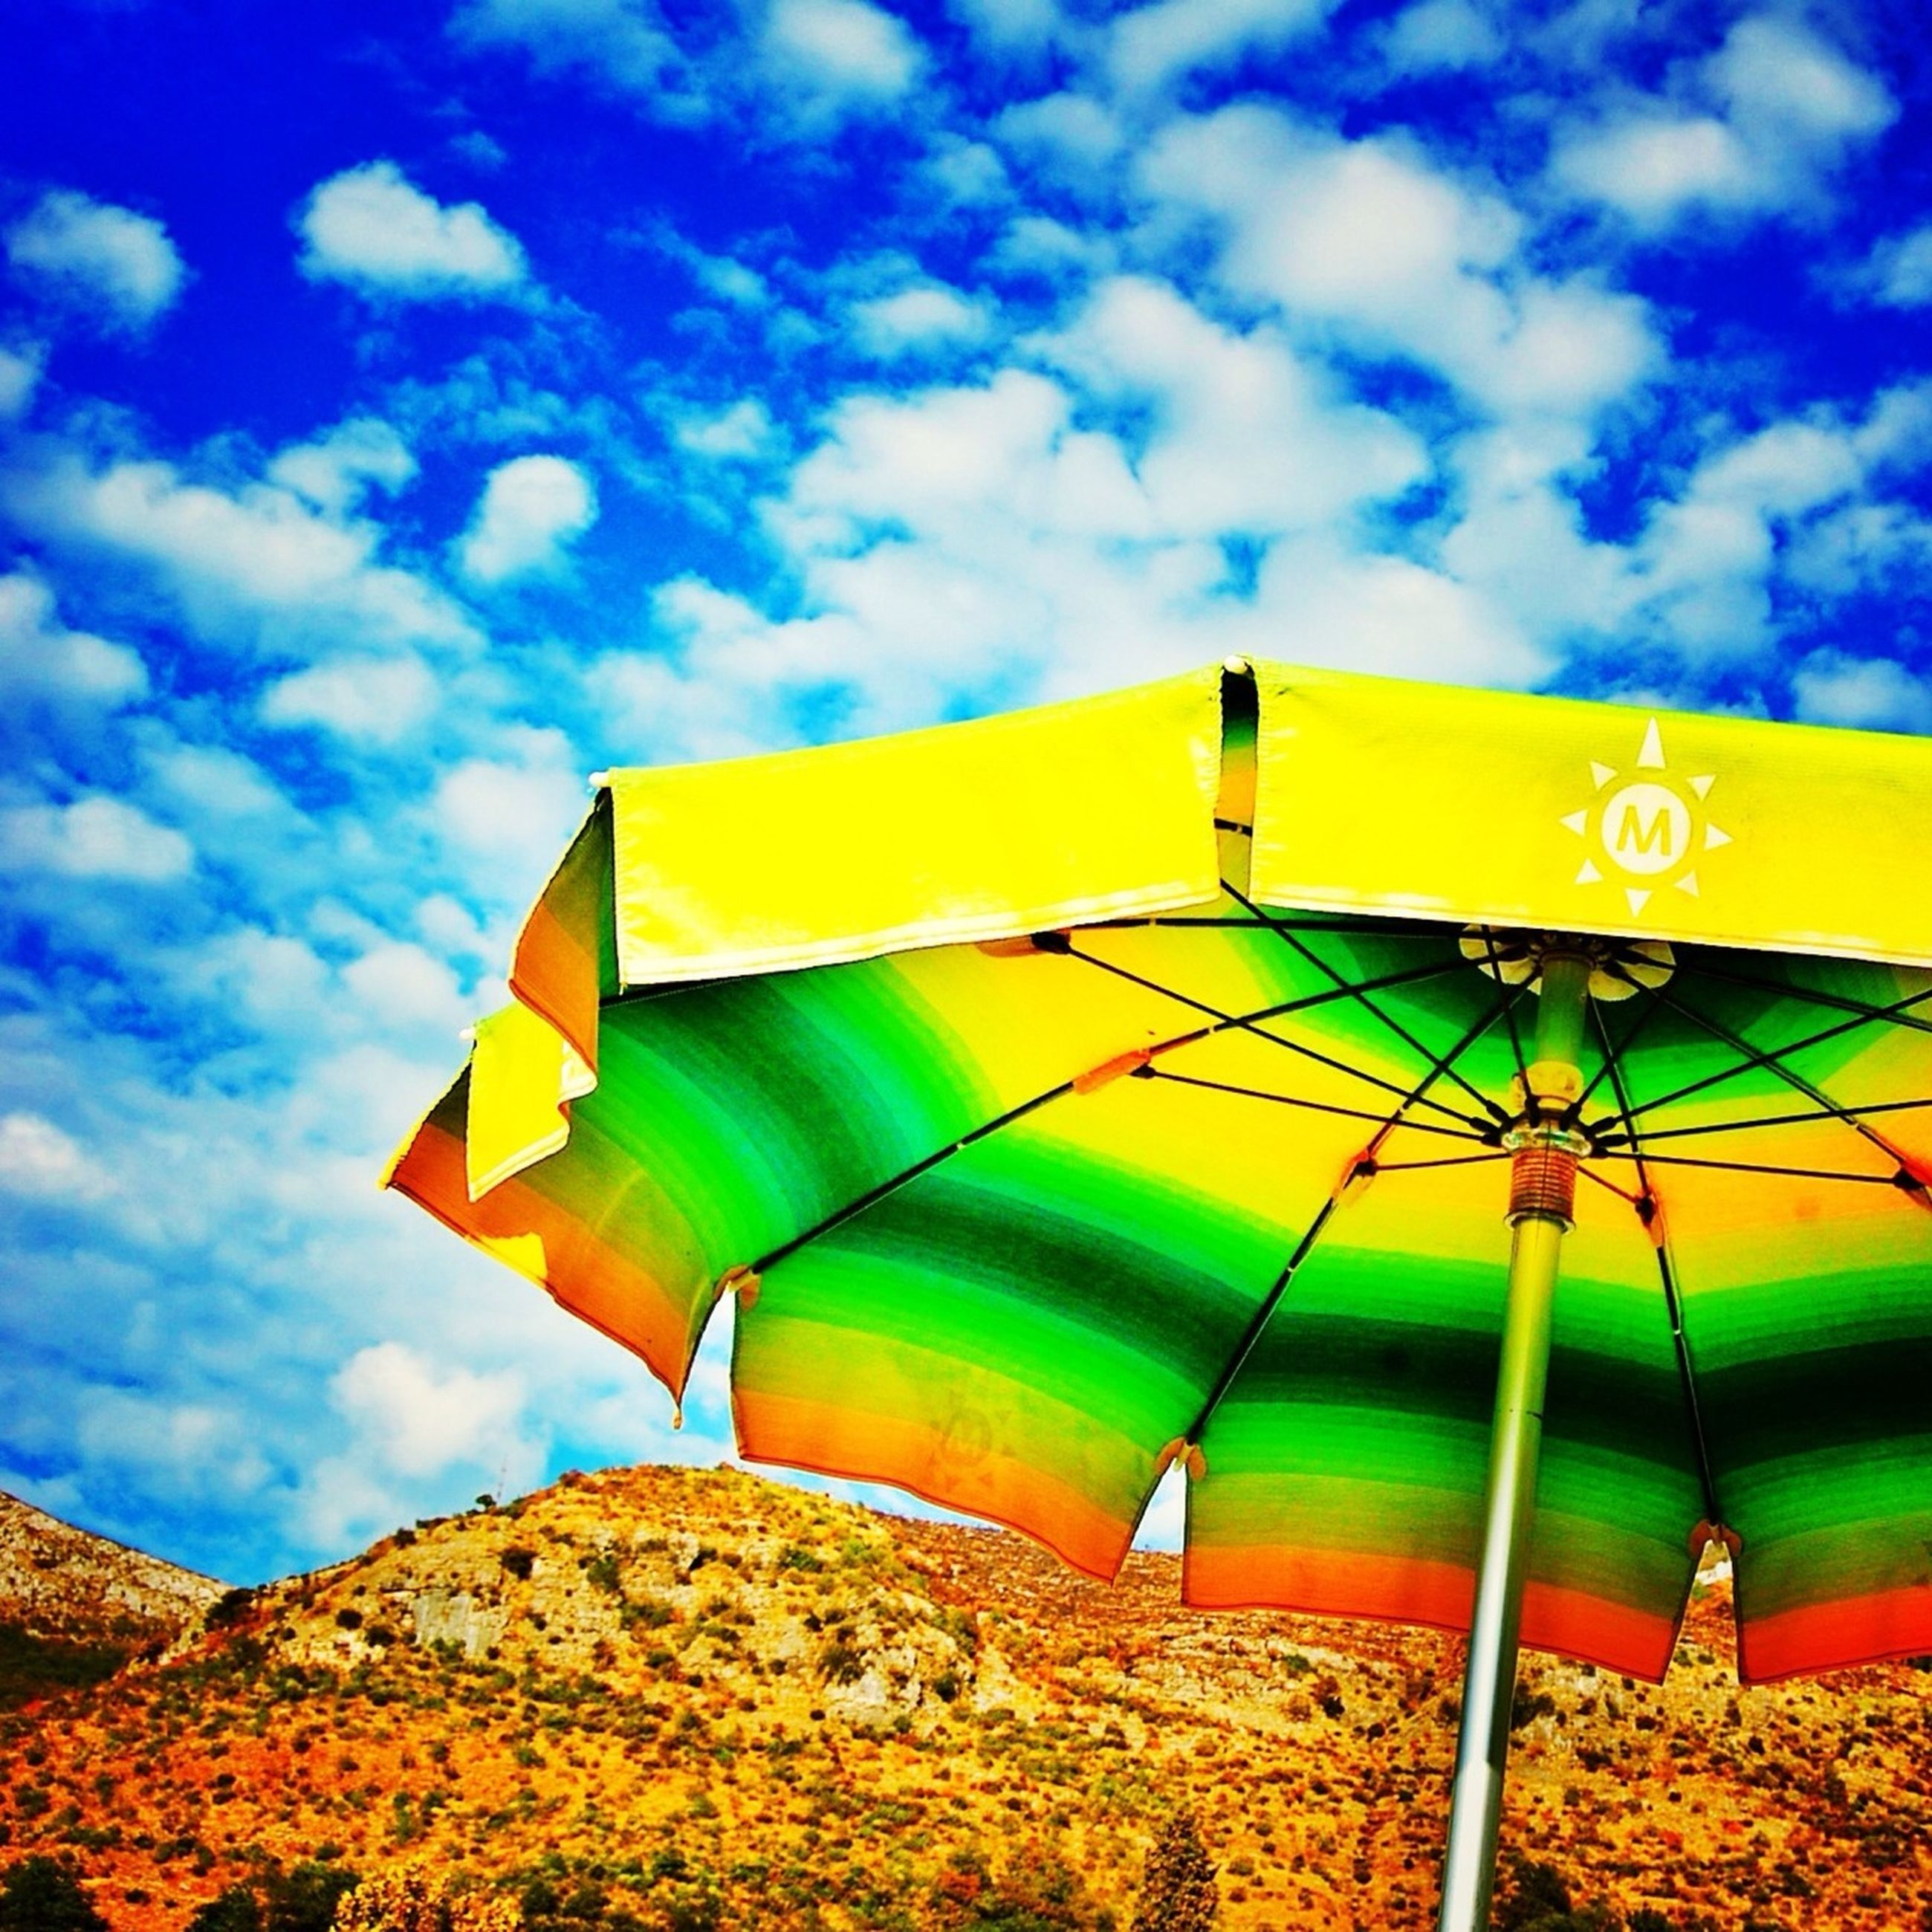 sky, yellow, cloud - sky, cloud, low angle view, umbrella, cloudy, nature, multi colored, flag, blue, tent, protection, outdoors, tranquility, built structure, day, beauty in nature, parasol, scenics